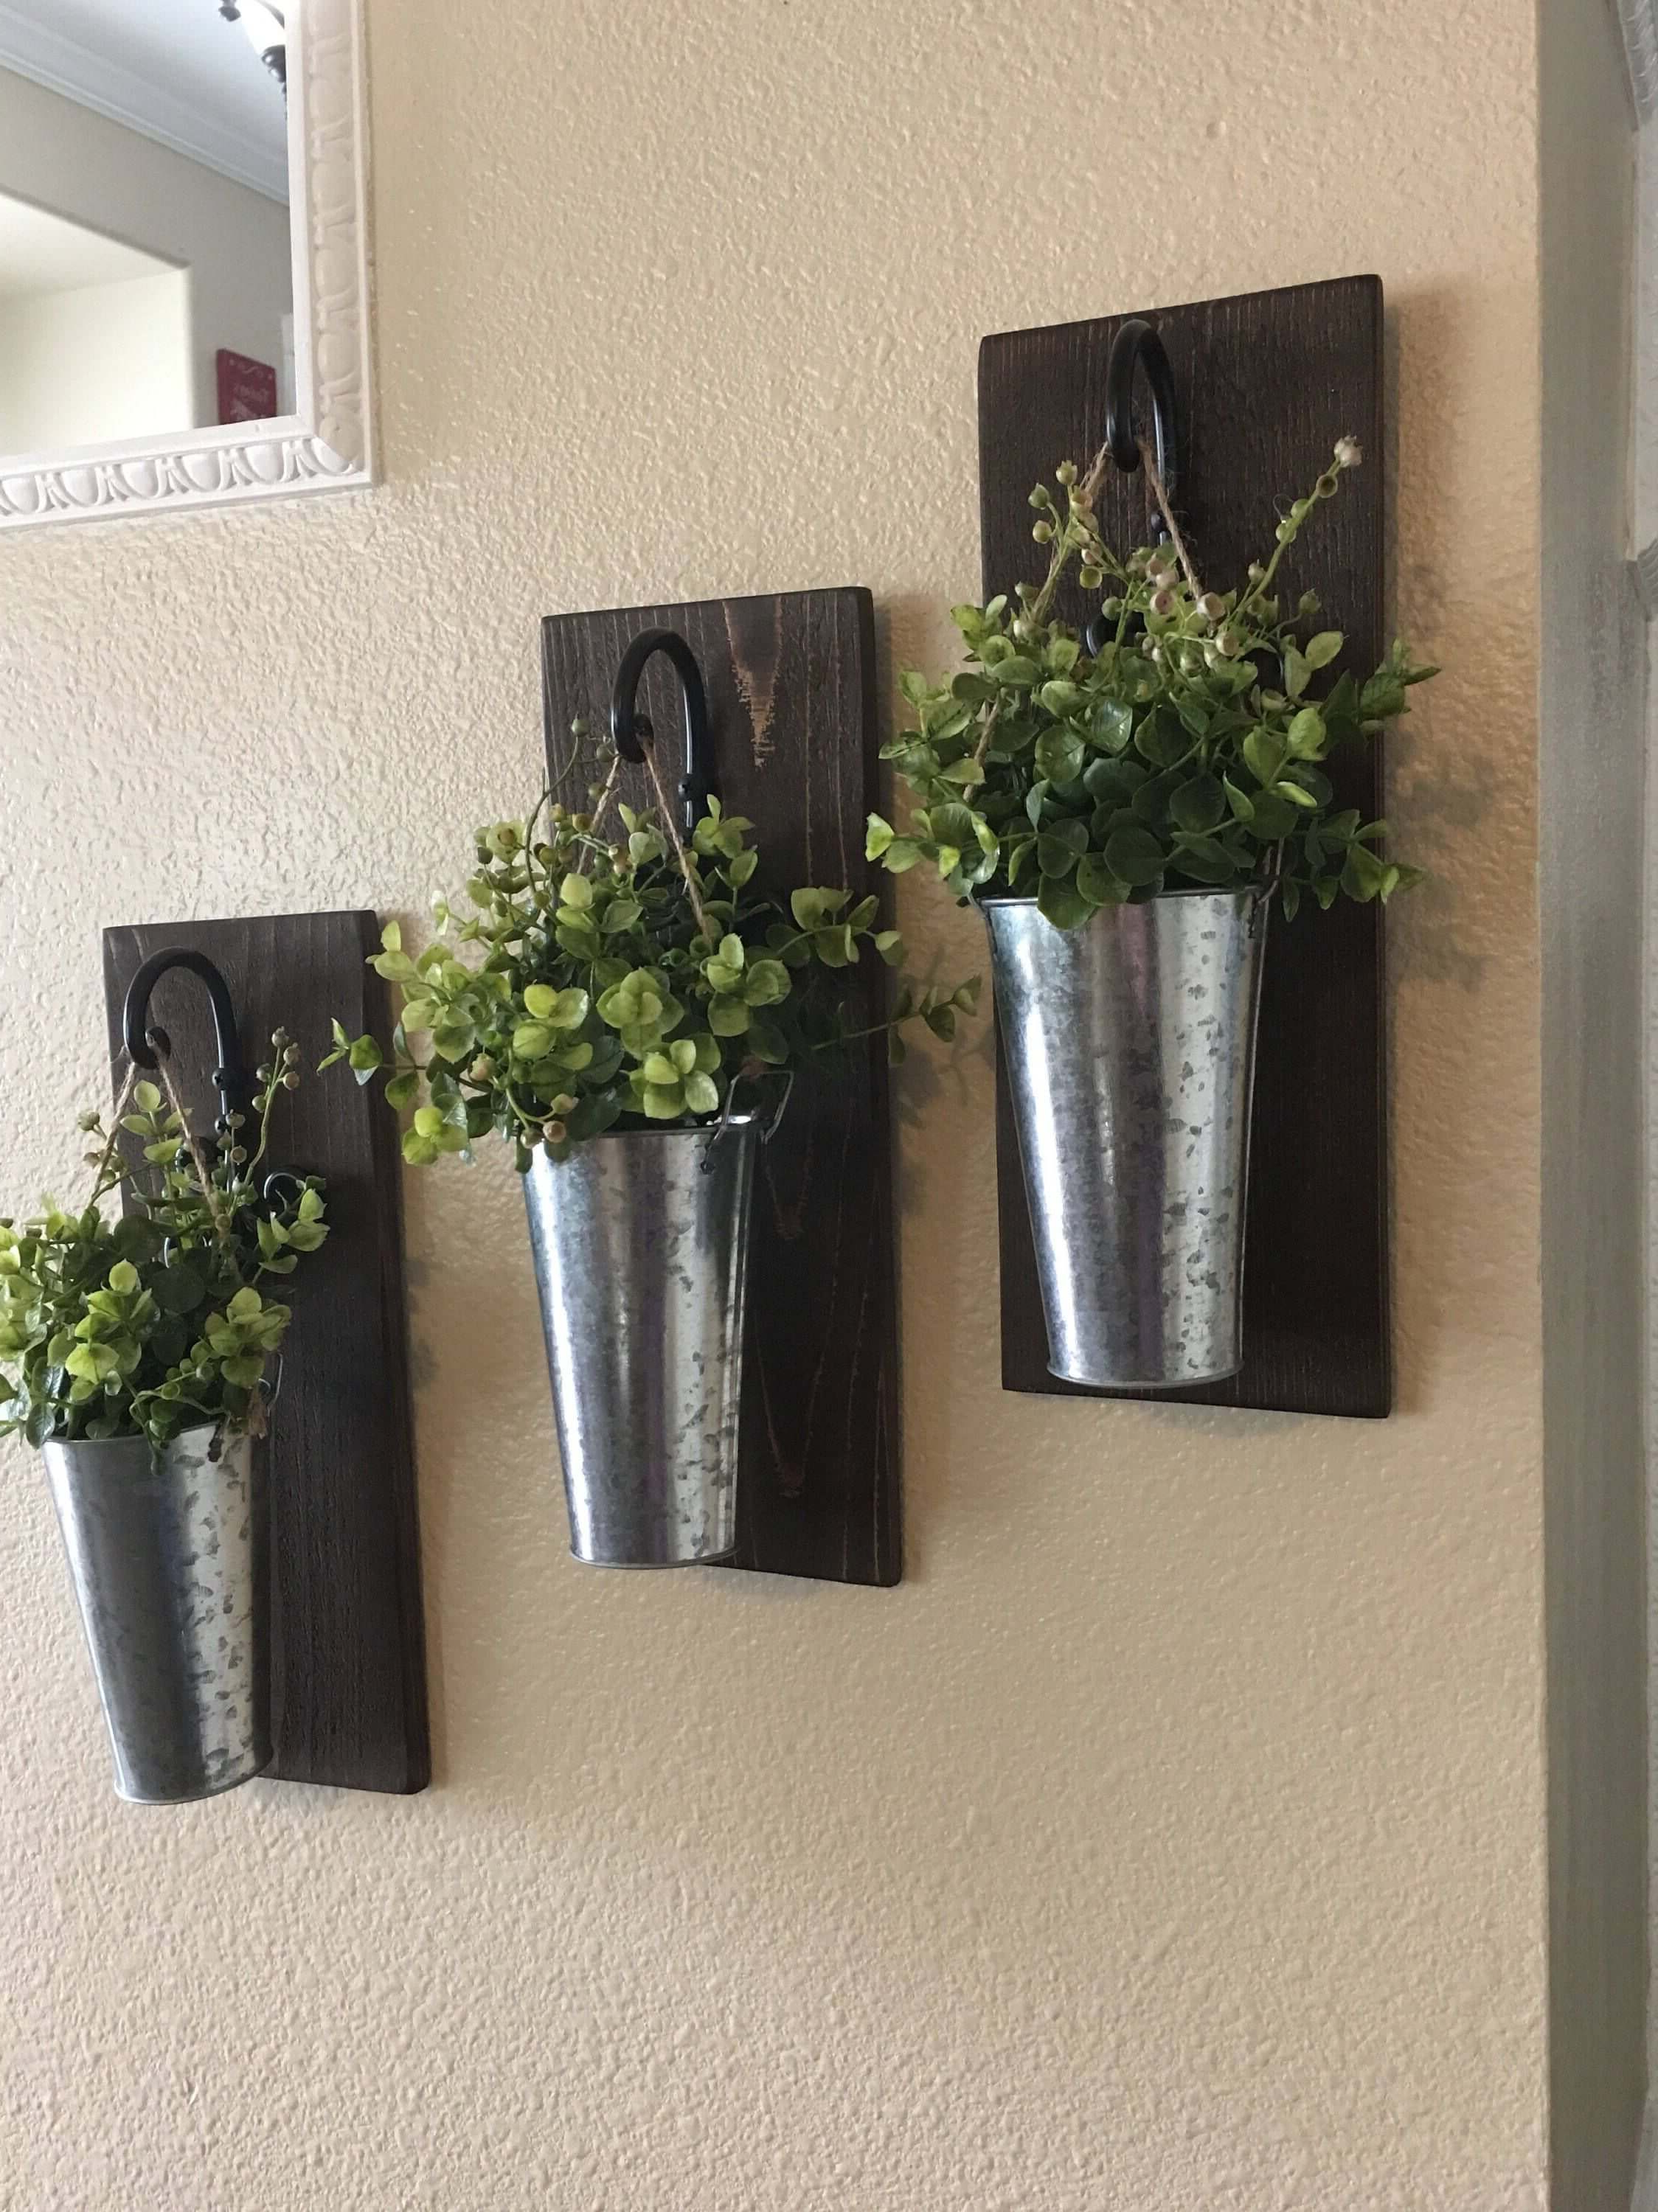 Farm Metal Wall Rack And 3 Tin Pot With Hanger Wall Decor Inside 2020 36 Best Farmhouse Plant Decor Ideas And Designs For (View 14 of 20)